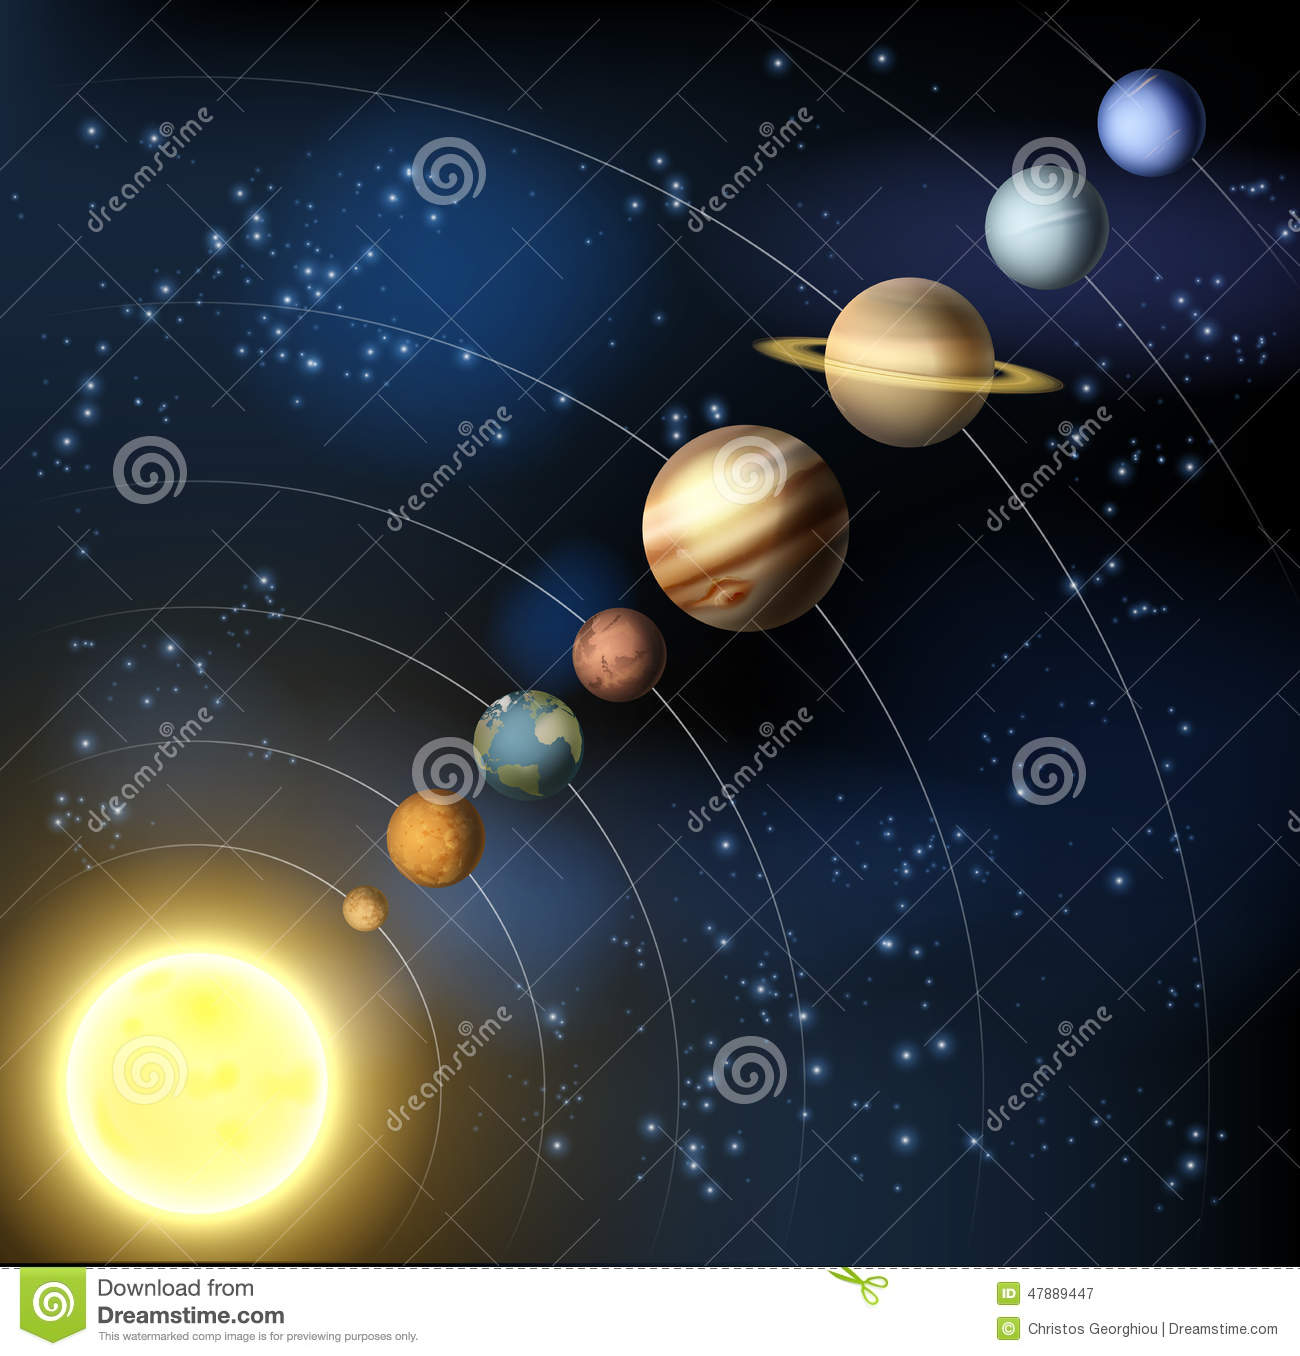 what causes the planets and moons in our solar system to orbit the sun - photo #32